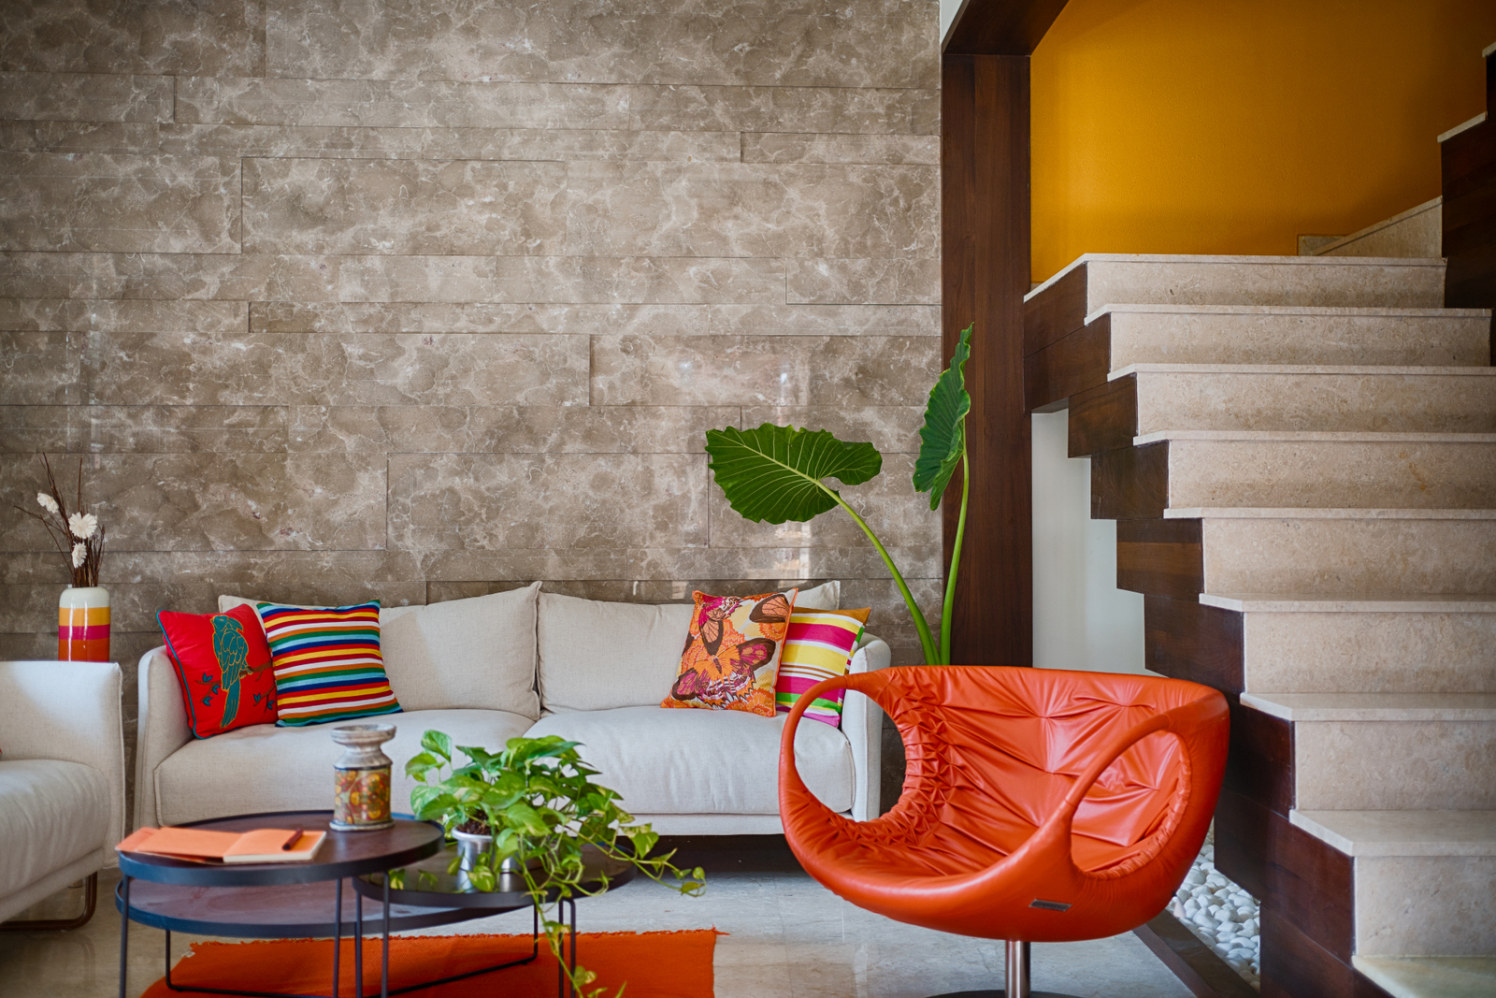 Beige patterned Wall with Orange Lounge Chair and Colorful Cushions Complimenting with White Sofa by Dhaval Patel Living-room Contemporary | Interior Design Photos & Ideas